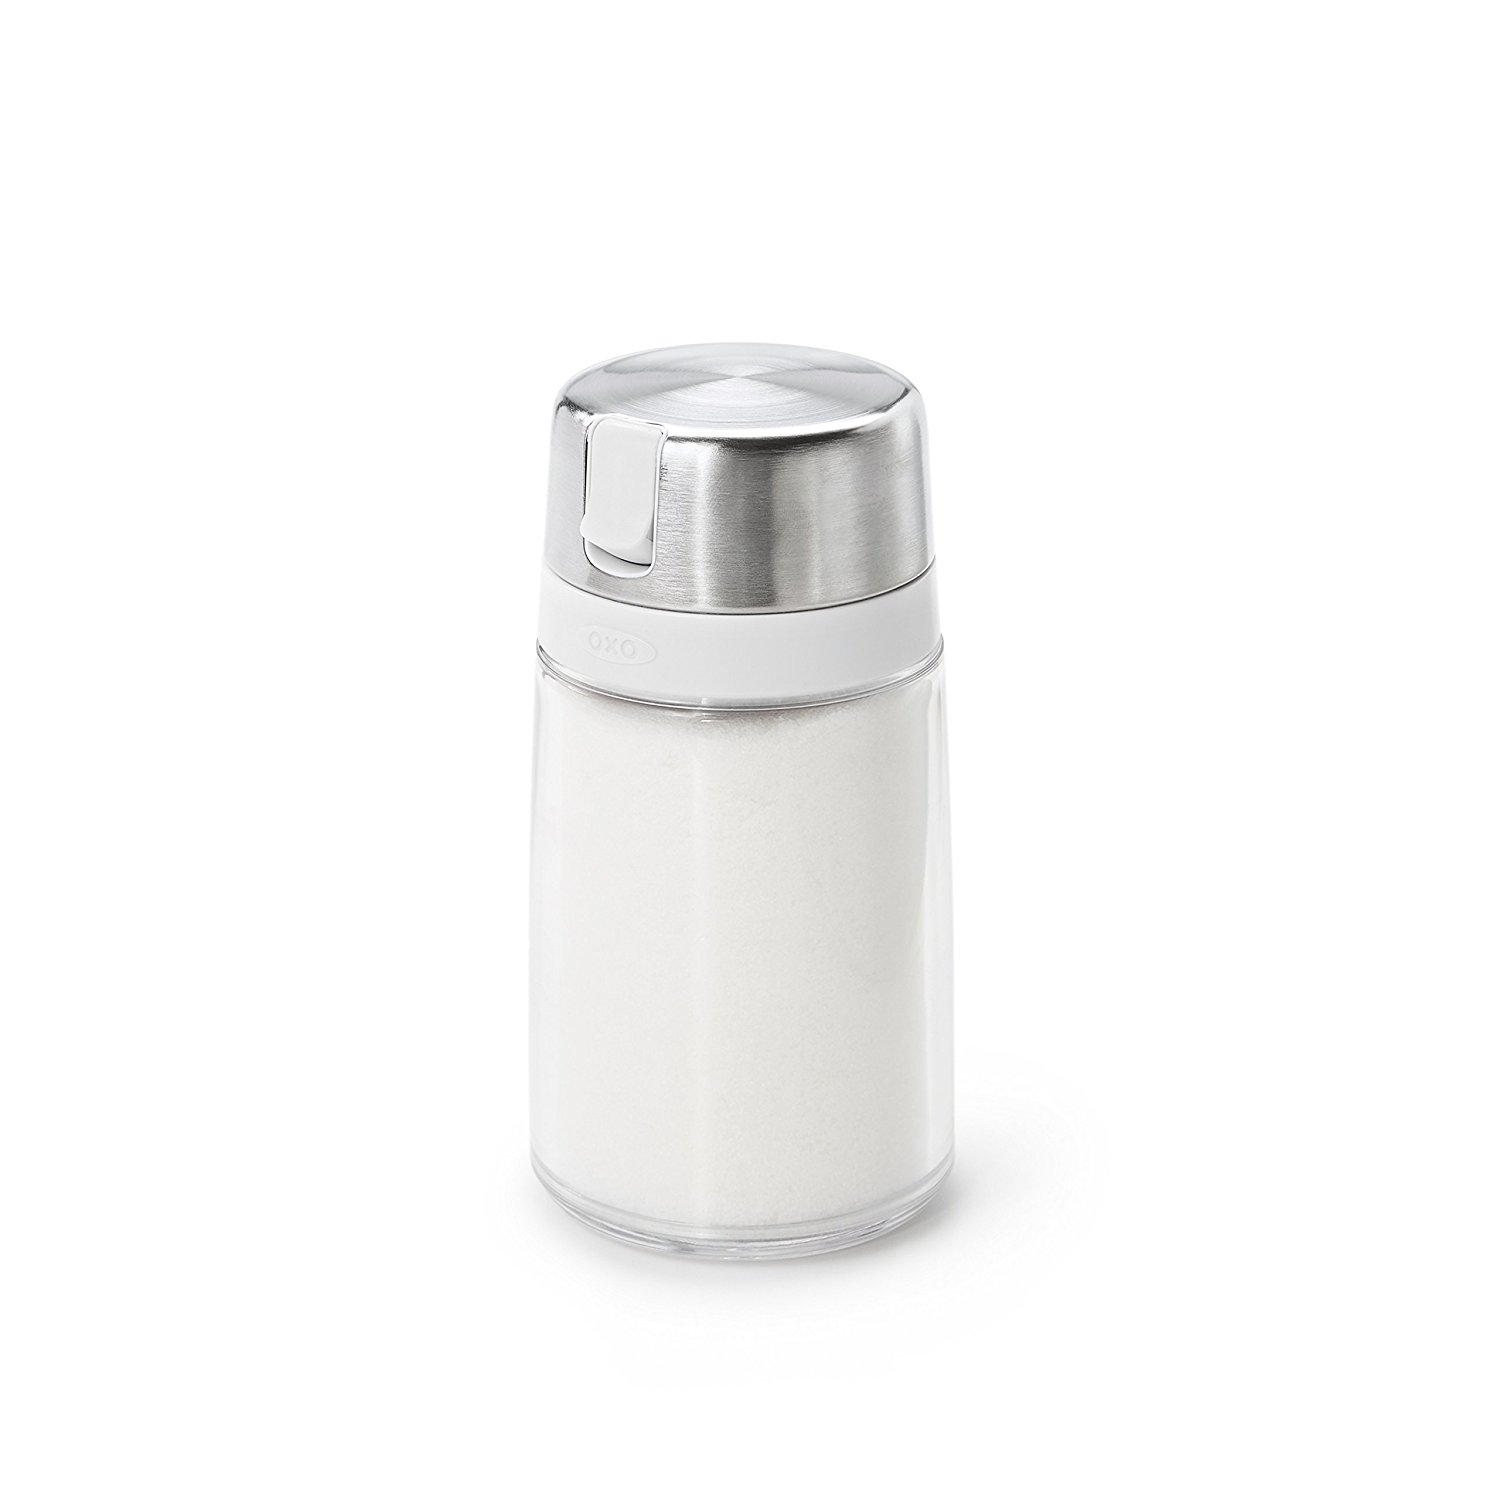 5 Best Sugar Shakers for your Kitchen